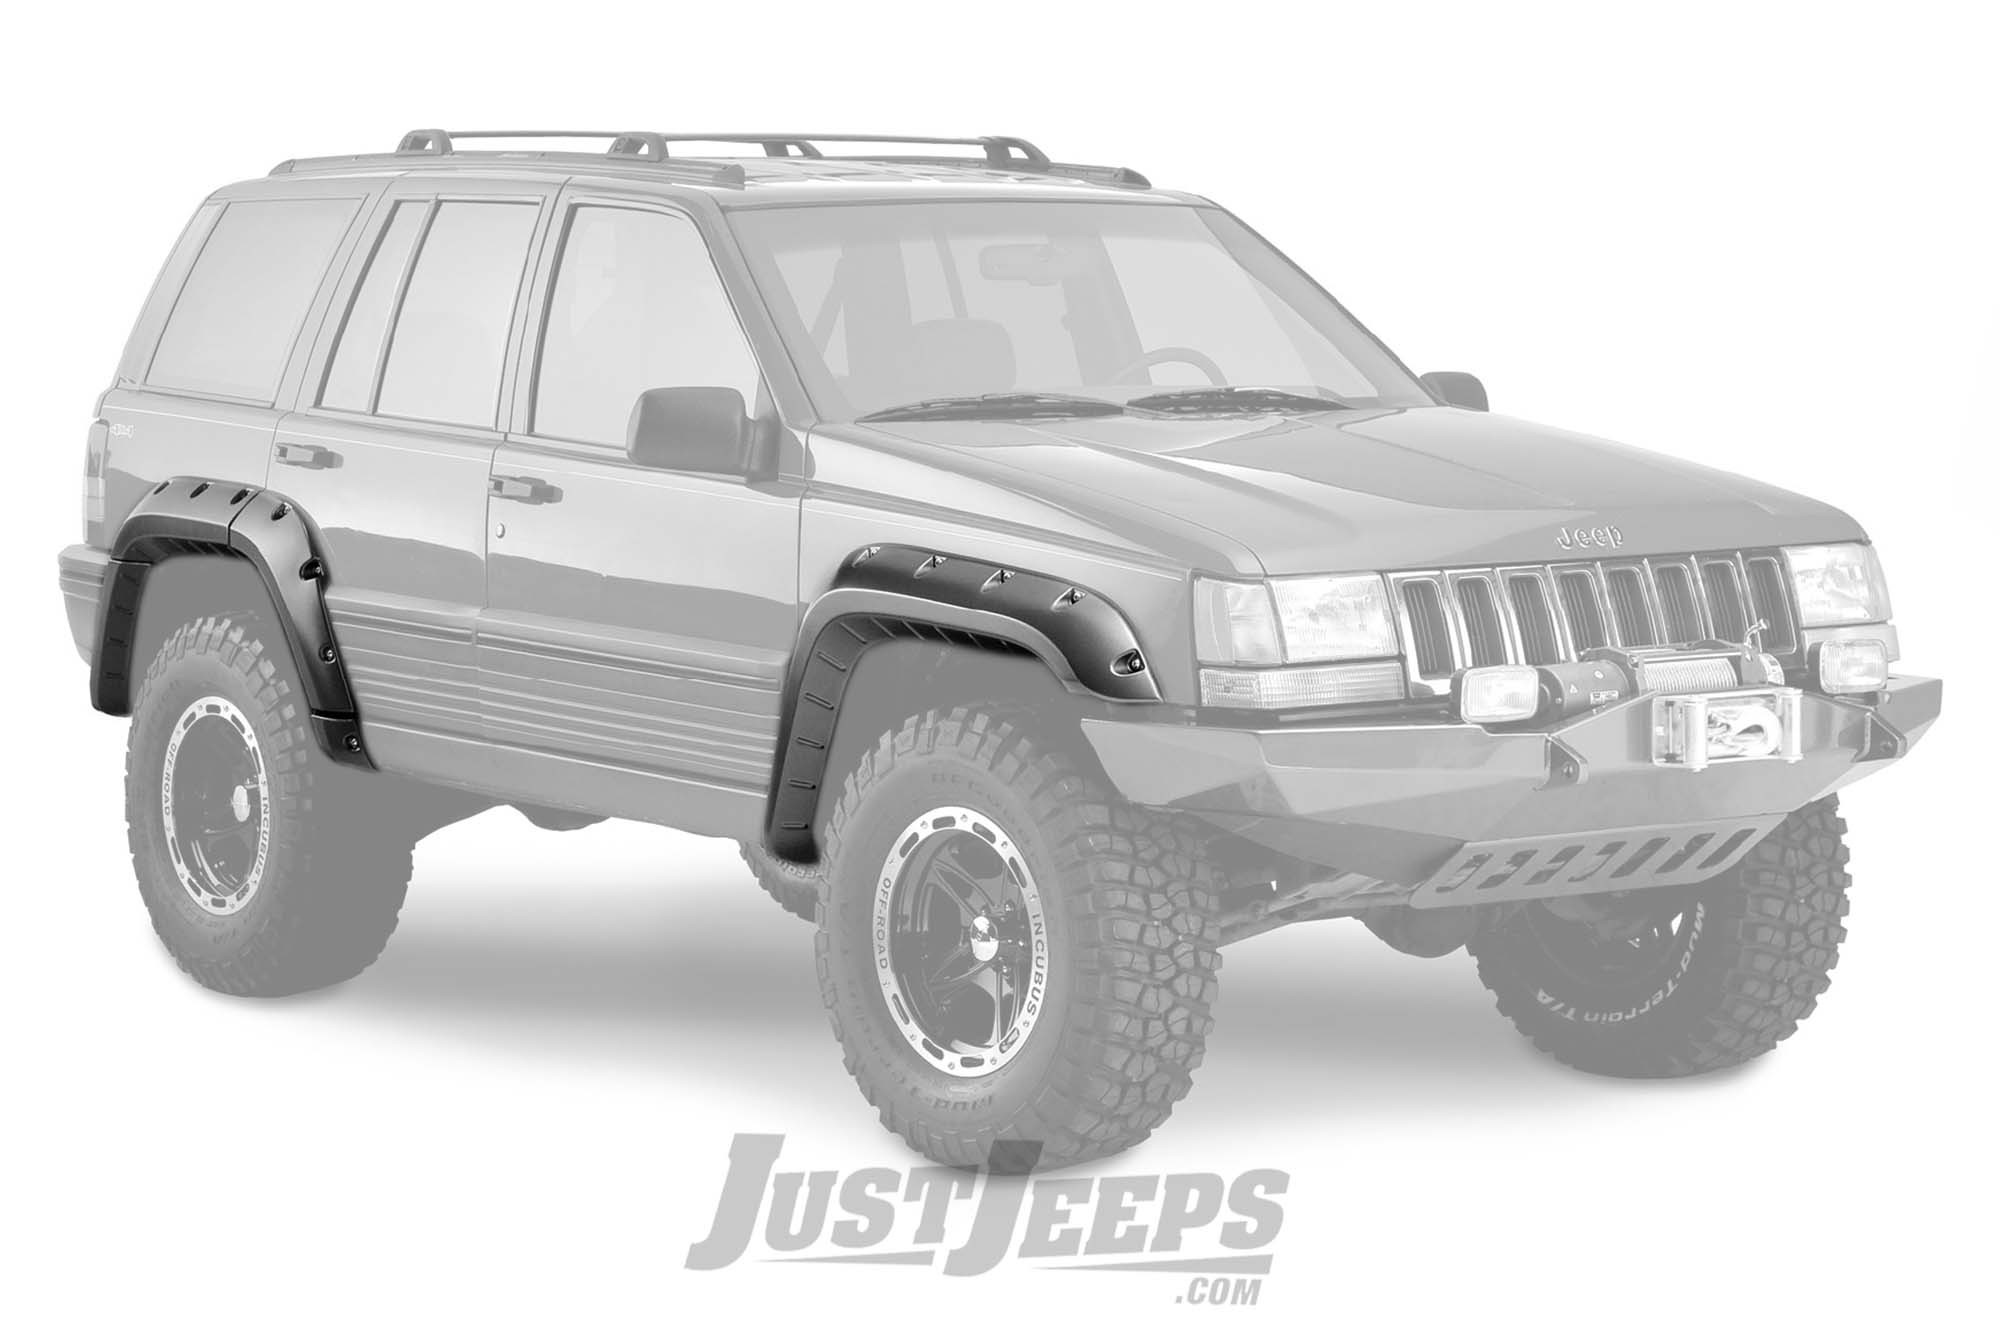 Bushwacker Cut-Out Style Fender Flares For 1993-98 Jeep Grand Cherokee ZJ Models